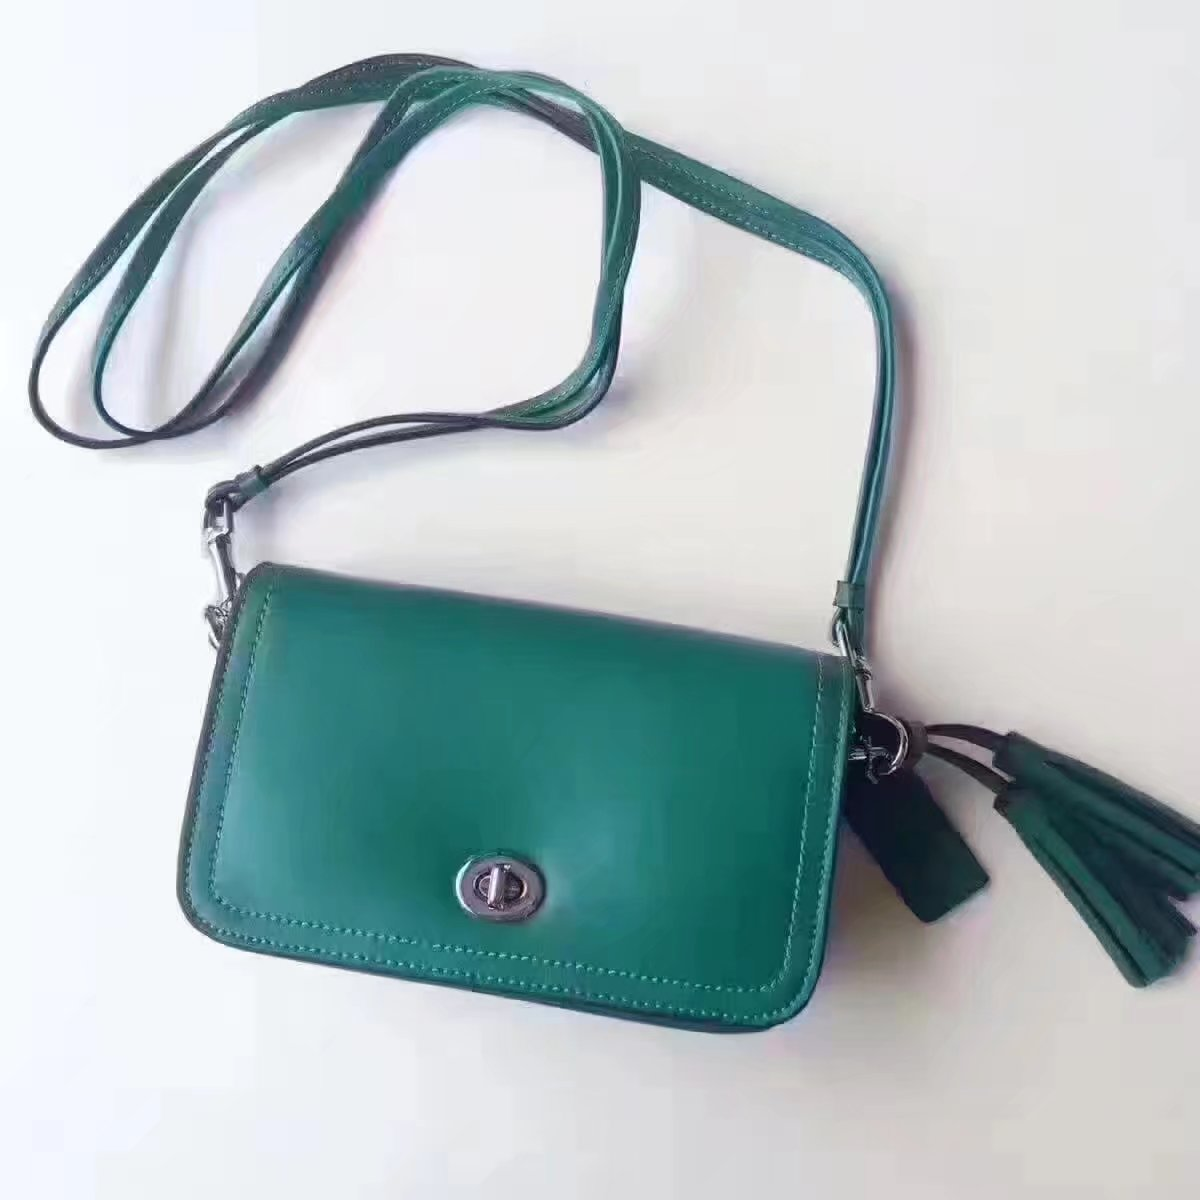 Coach 1941 Dinky In Colorblock Mixed Materials Green